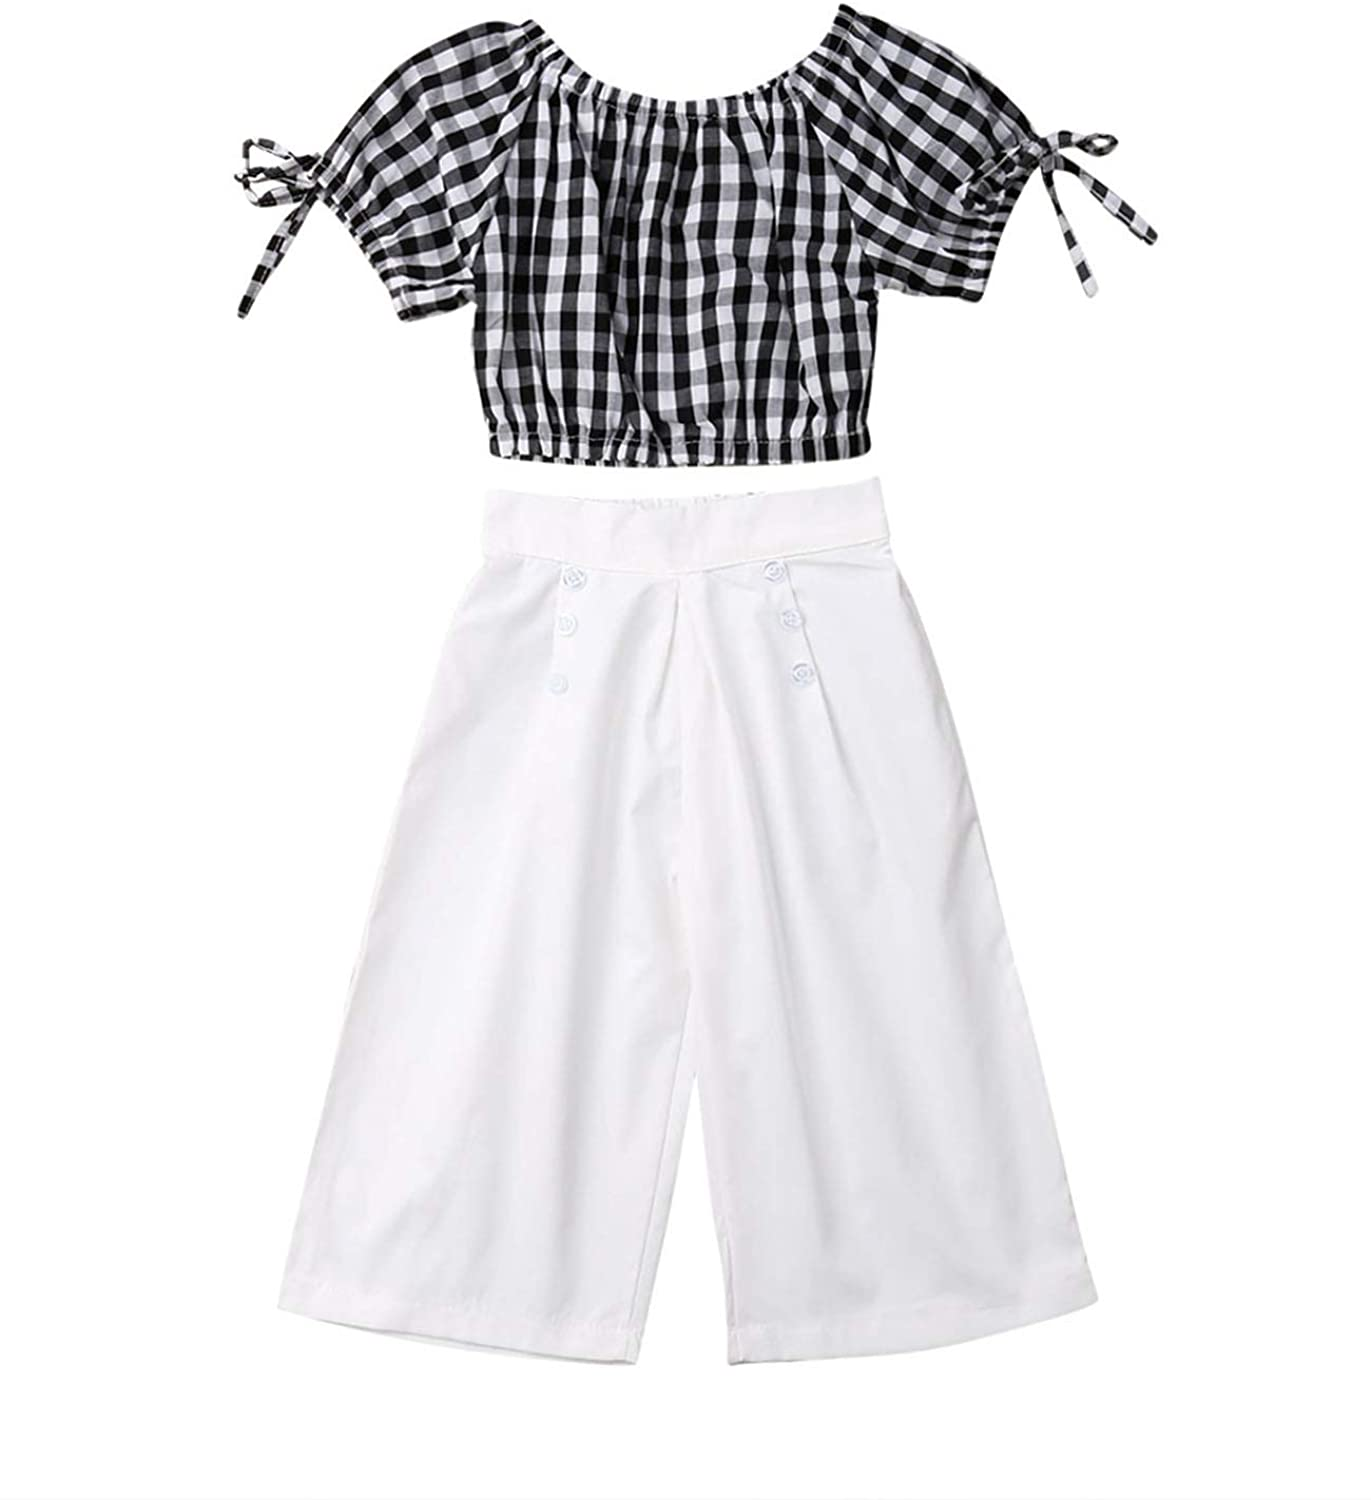 Toddler Kids Baby Girls Plaid Off Shoulder Crop Tops + Wide Leg Pants 2Pcs Summer Outfit Clothes